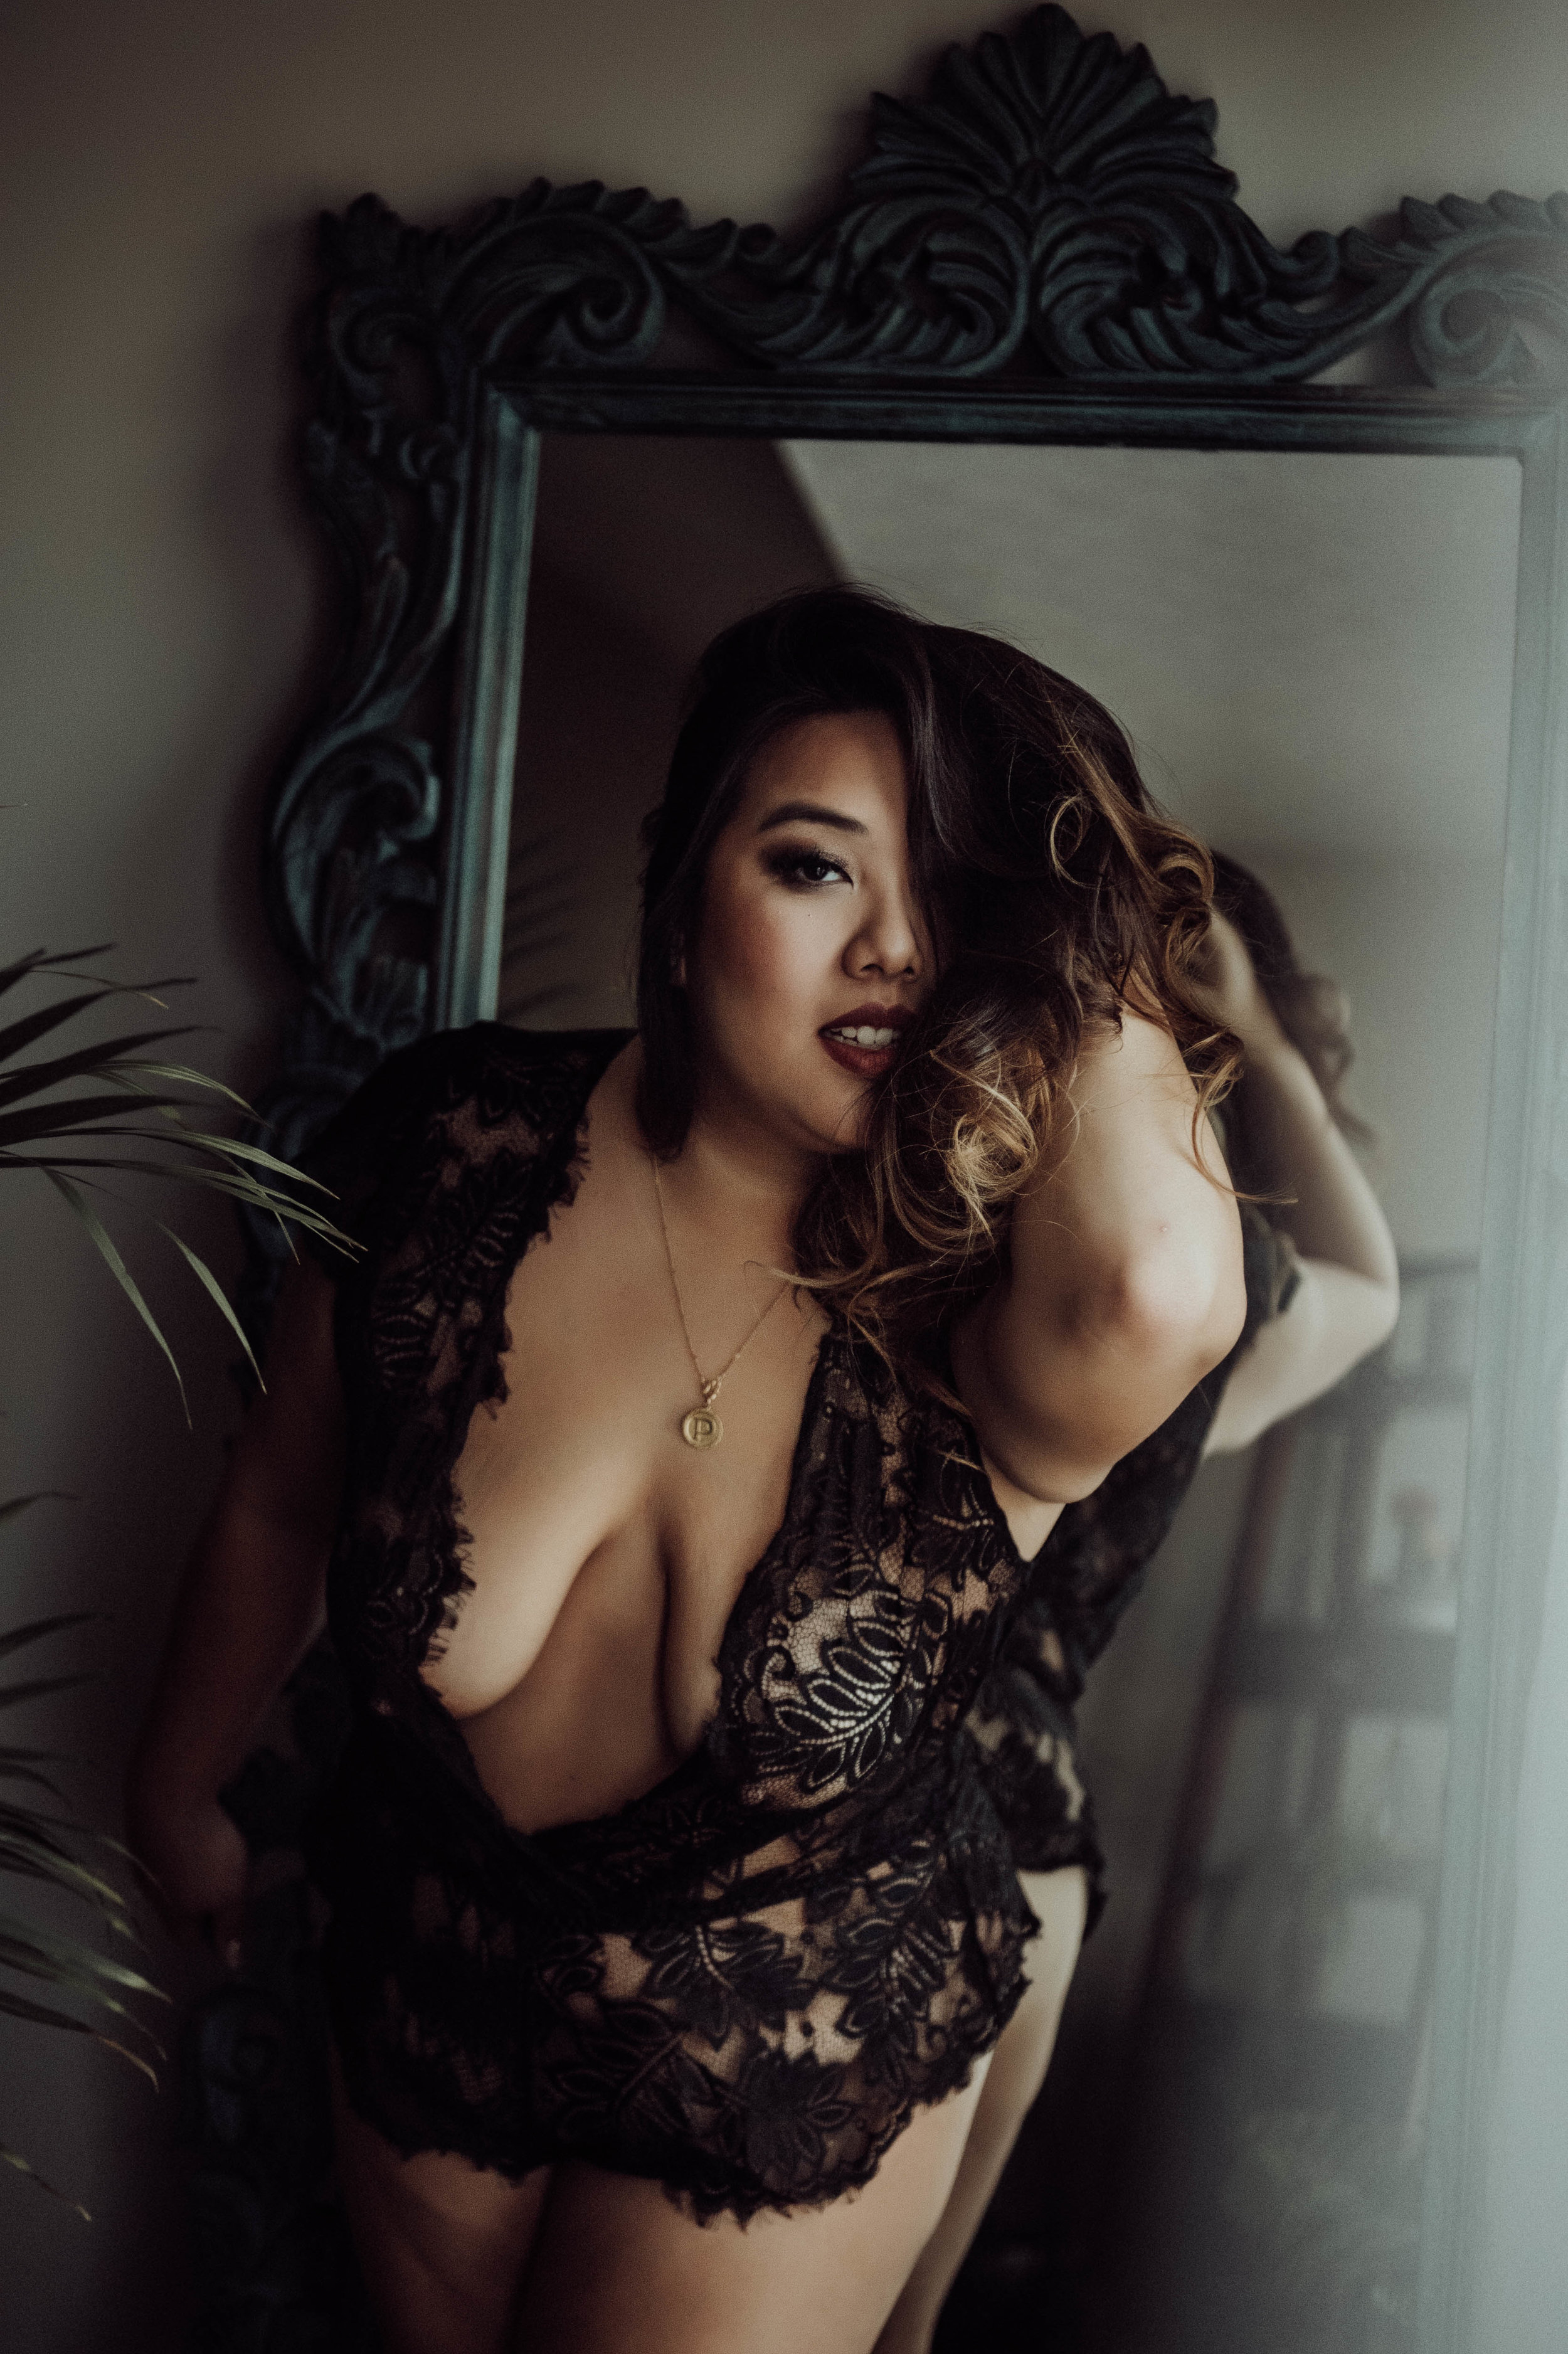 Plus size asian woman in black lace lingerie standing with mirror boudoir photography new york studio